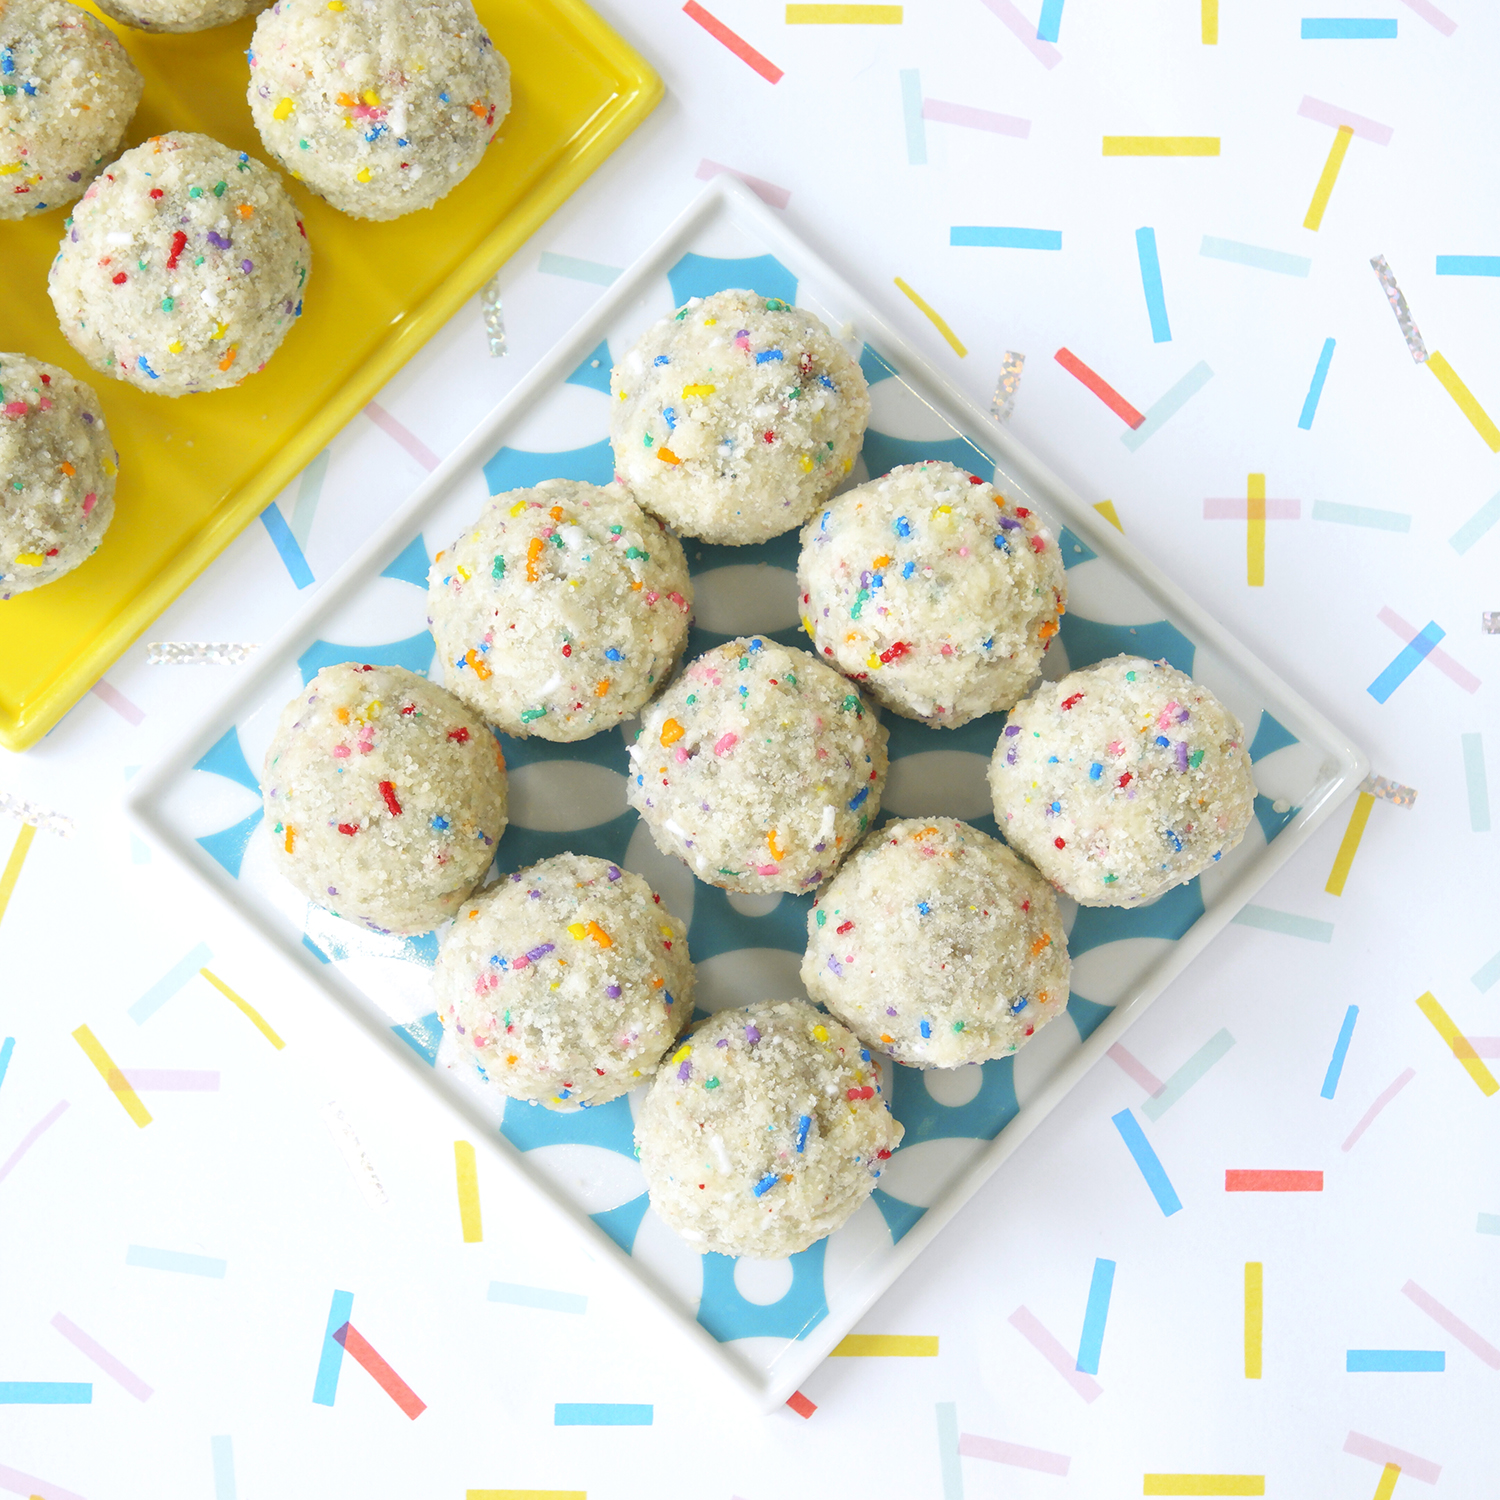 birthday cake truffles on sprinkle background in flat lay style